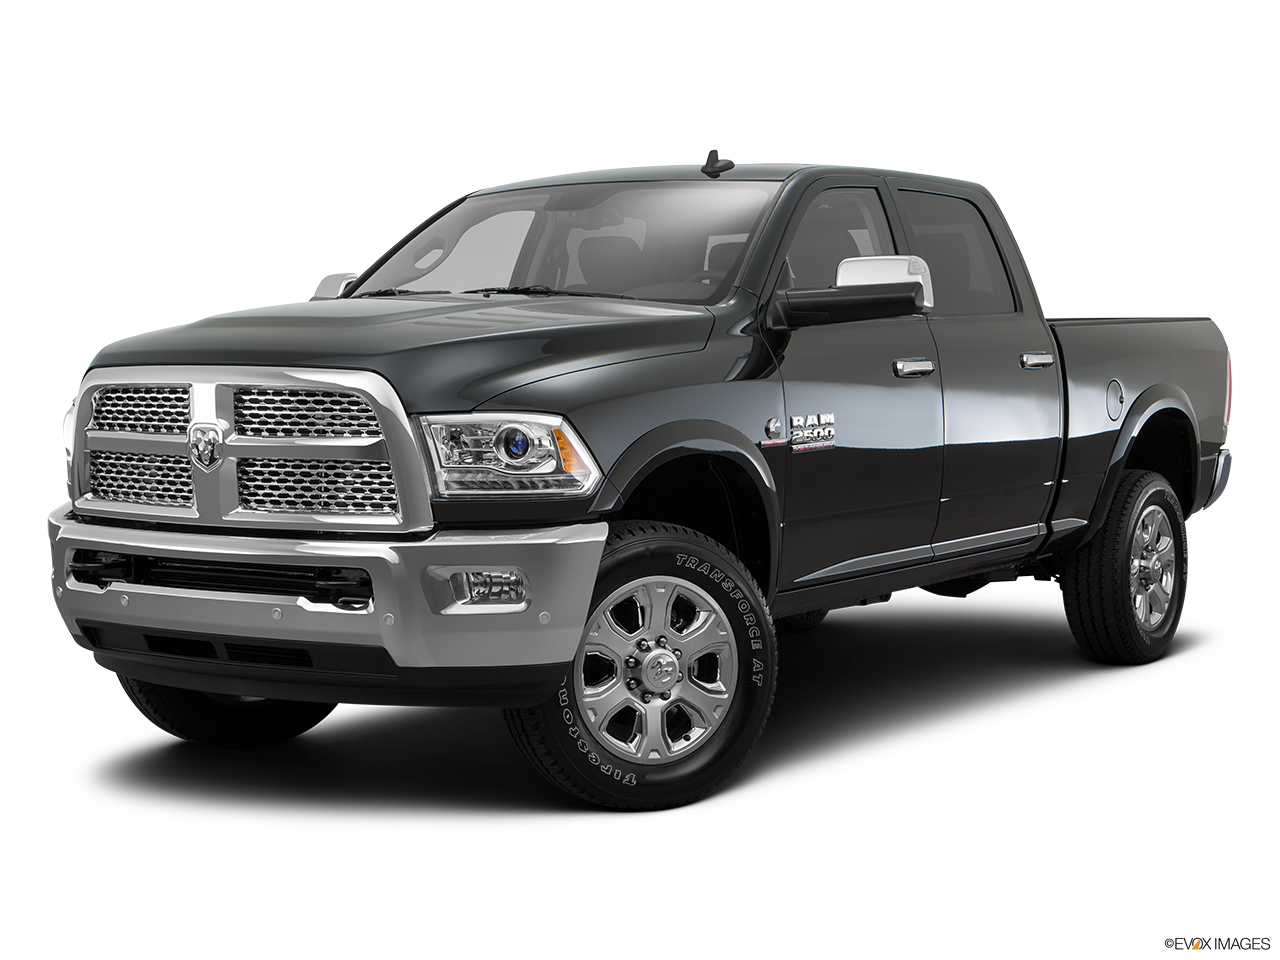 Test Drive A 2016 RAM 2500 at Cherry Hill Dodge Chrysler Jeep RAM in Cherry Hill